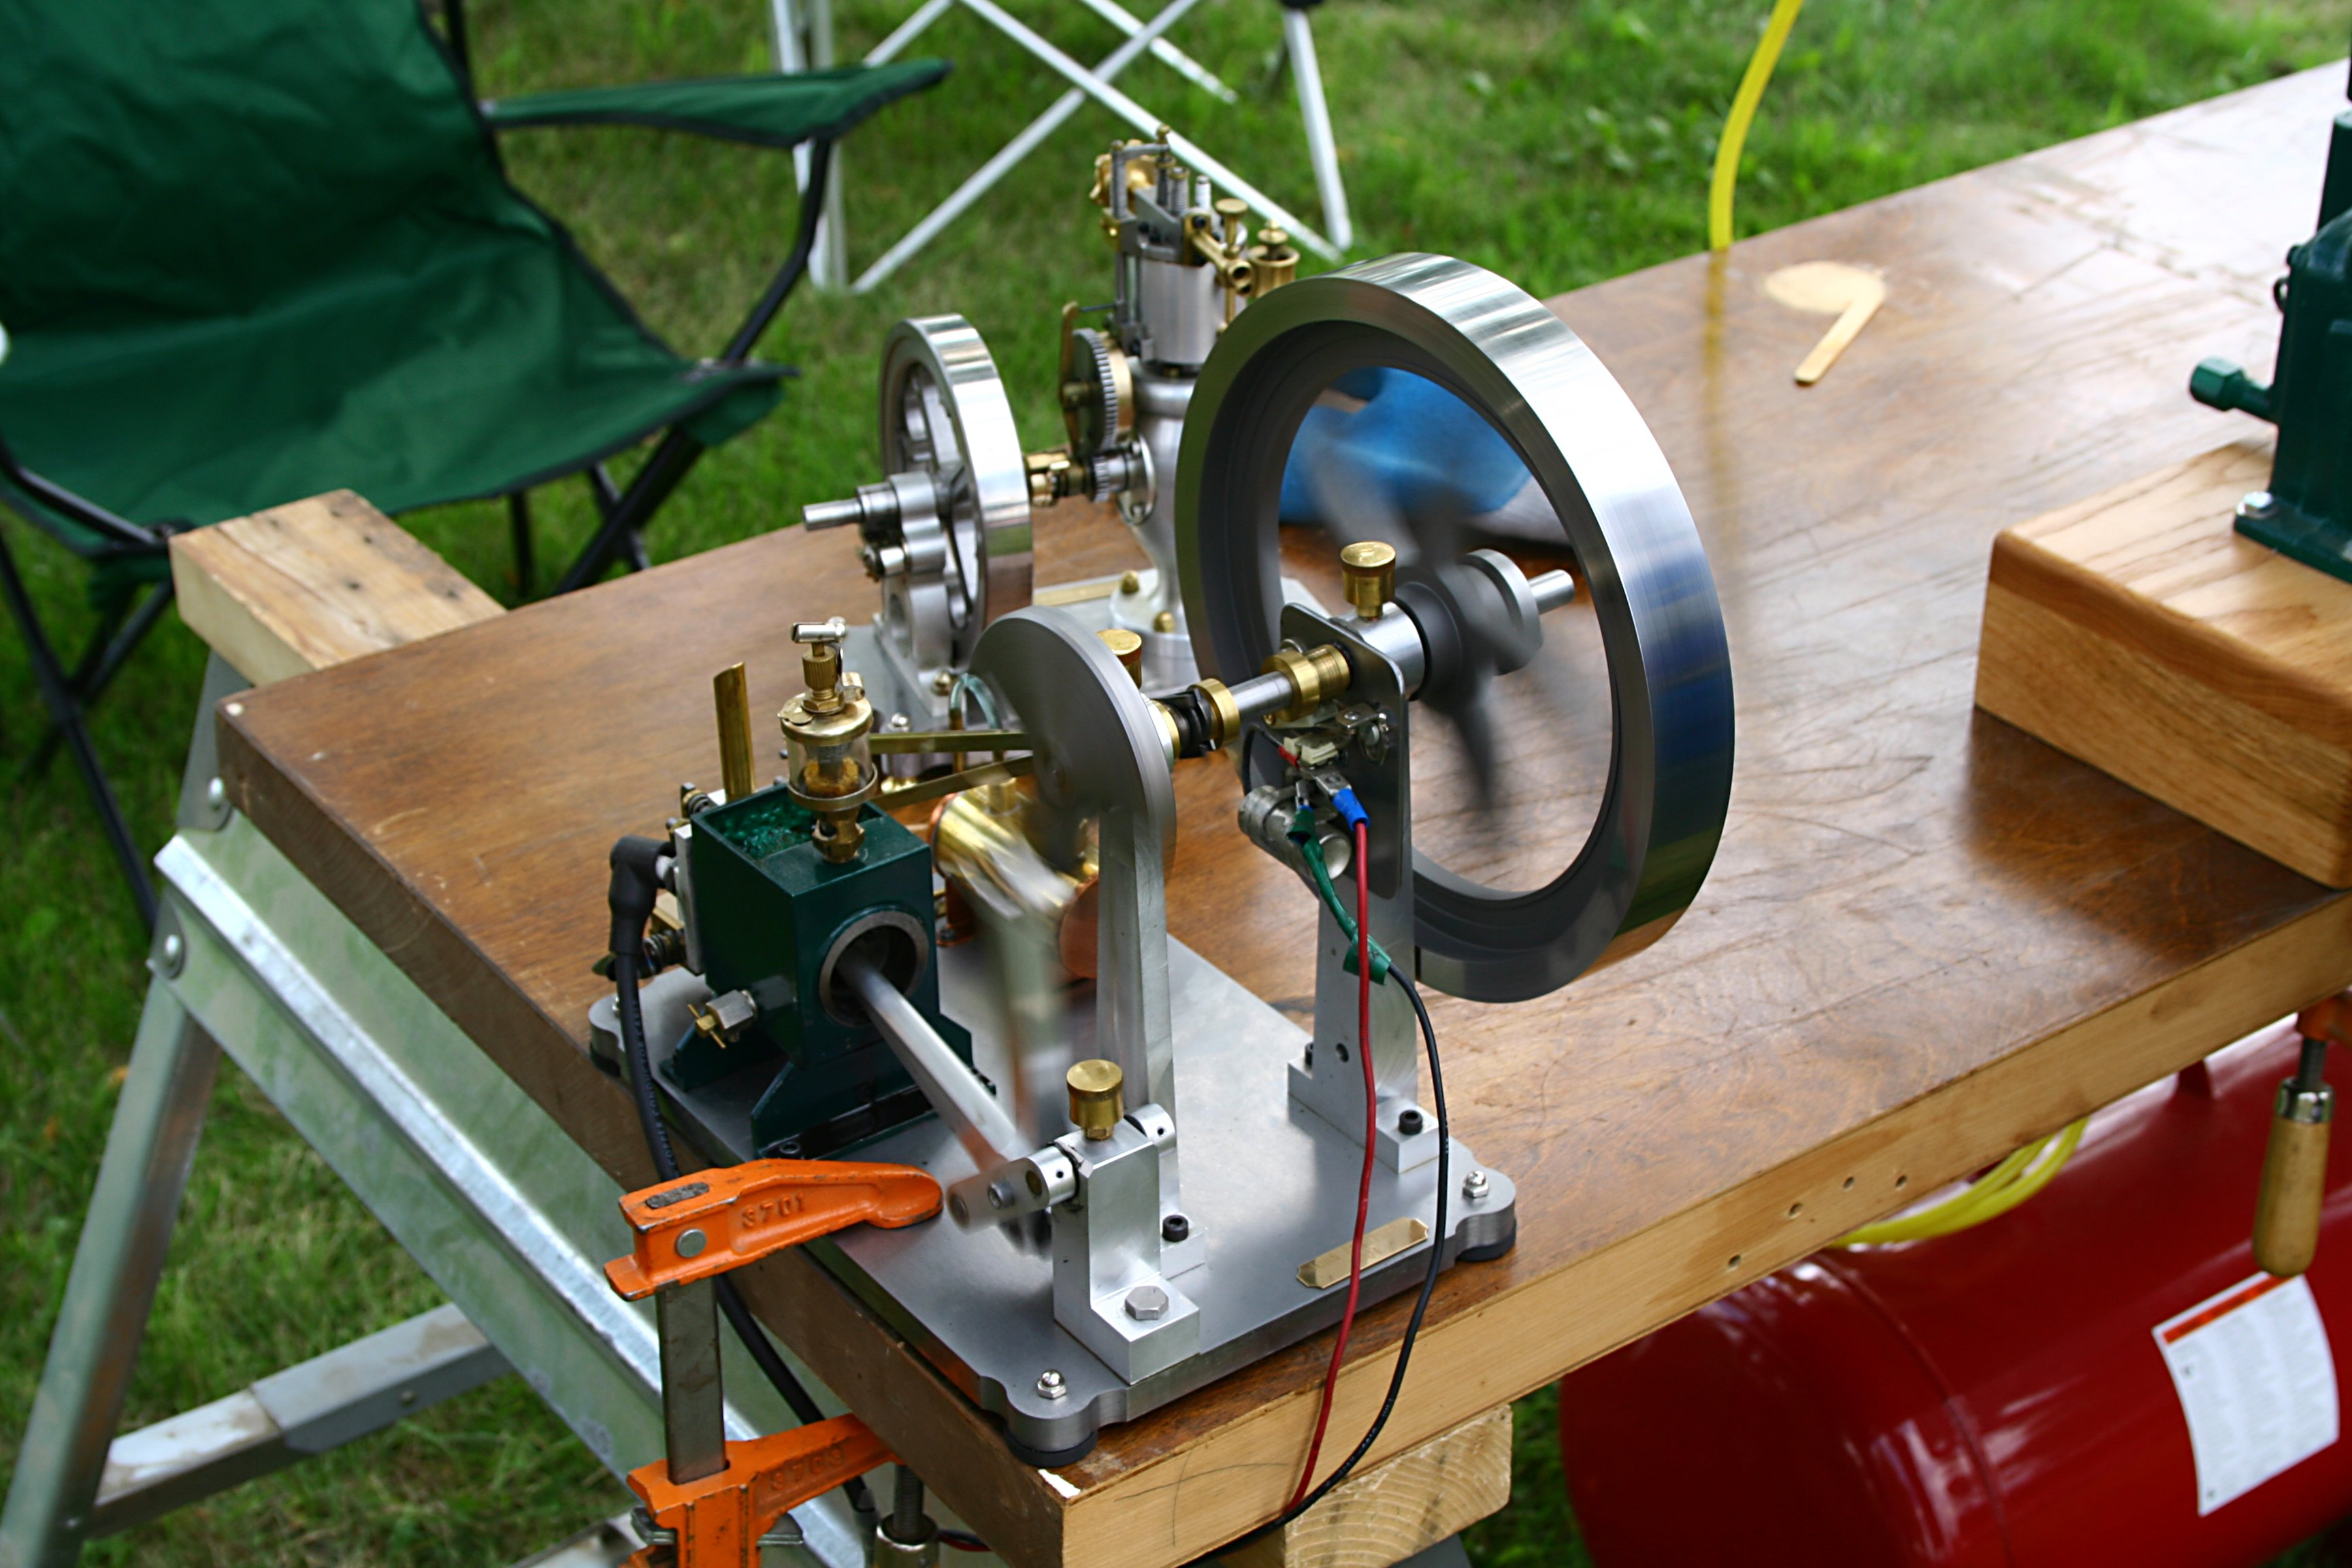 Solenoid Wiring Diagram Yamaha G1 as well Gallery besides File a inson Cycle engine together with Amyalbers Marketing2010 blogspot as well Time Capsules. on file electric motor cycle 2